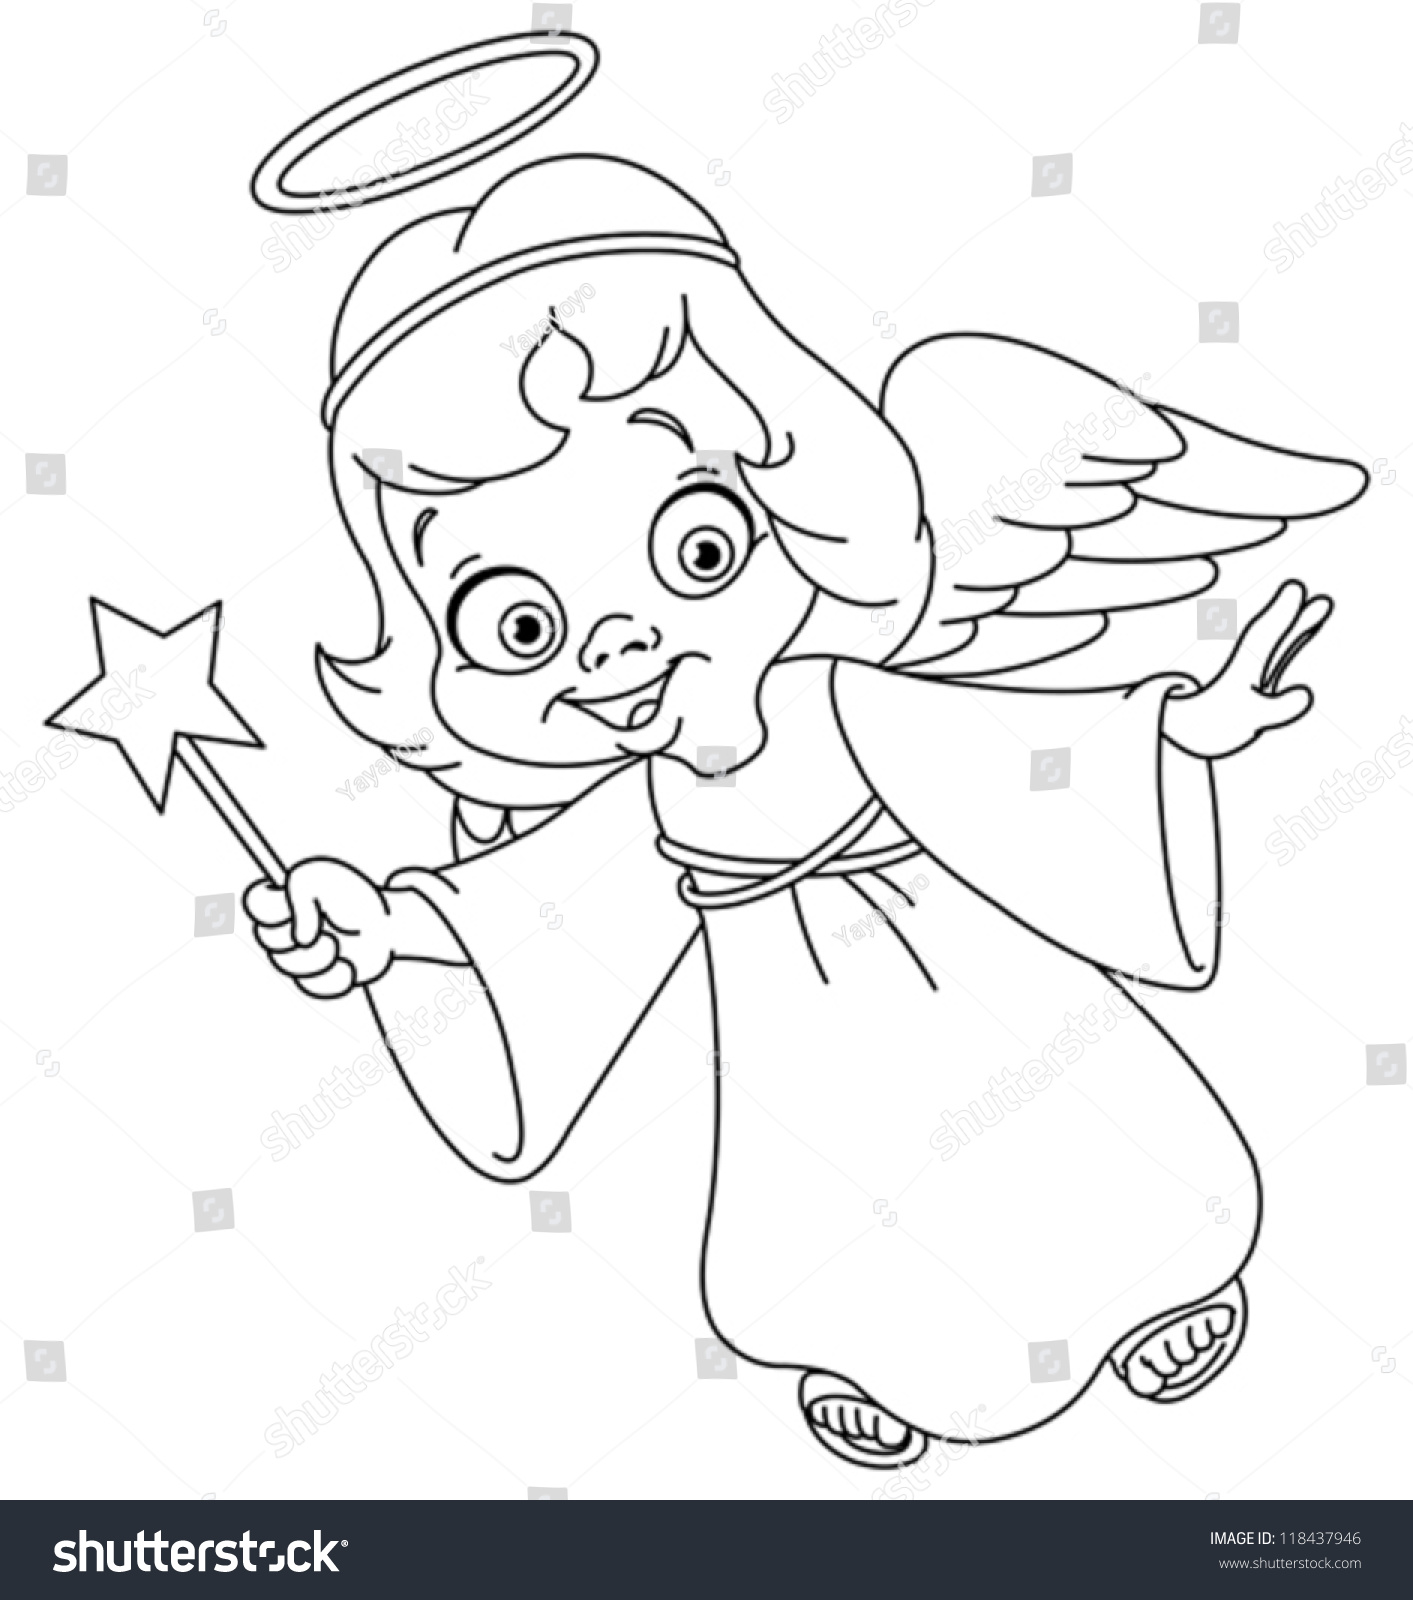 angel coloring pages page angels free line drawings pdf images ...